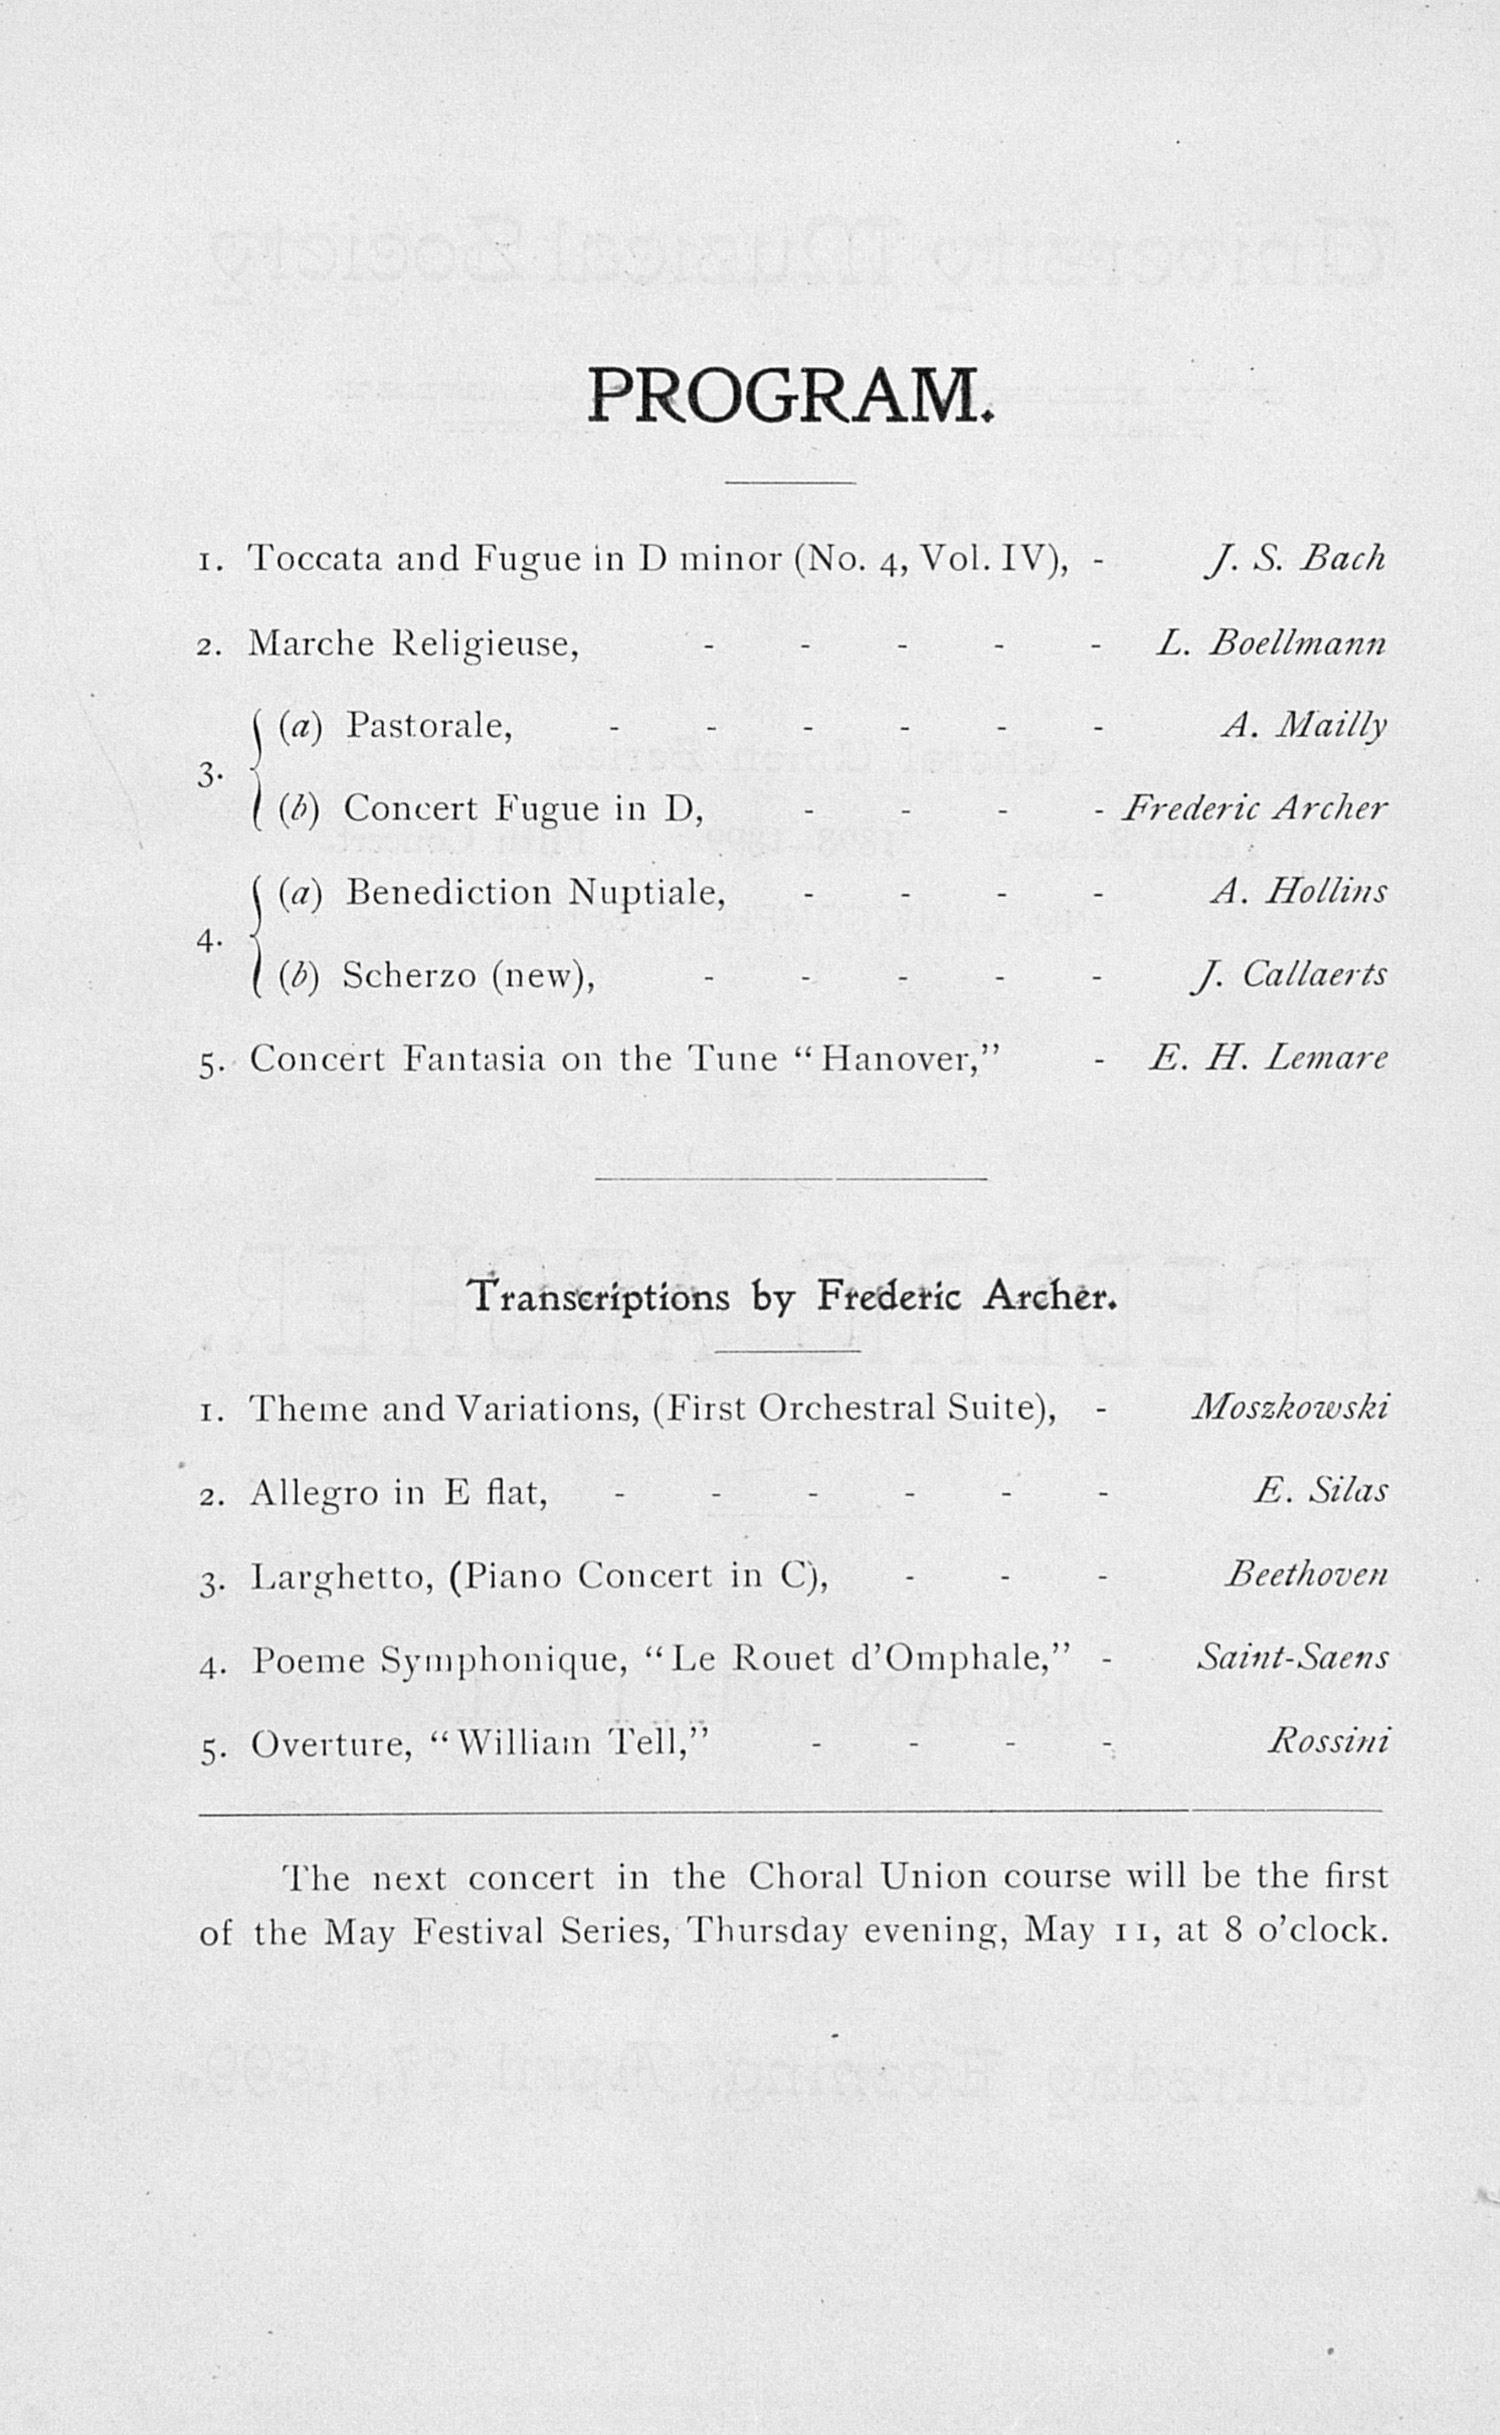 UMS Concert Program, April 27, 1899: Choral Union Series -- Frederic Archer image